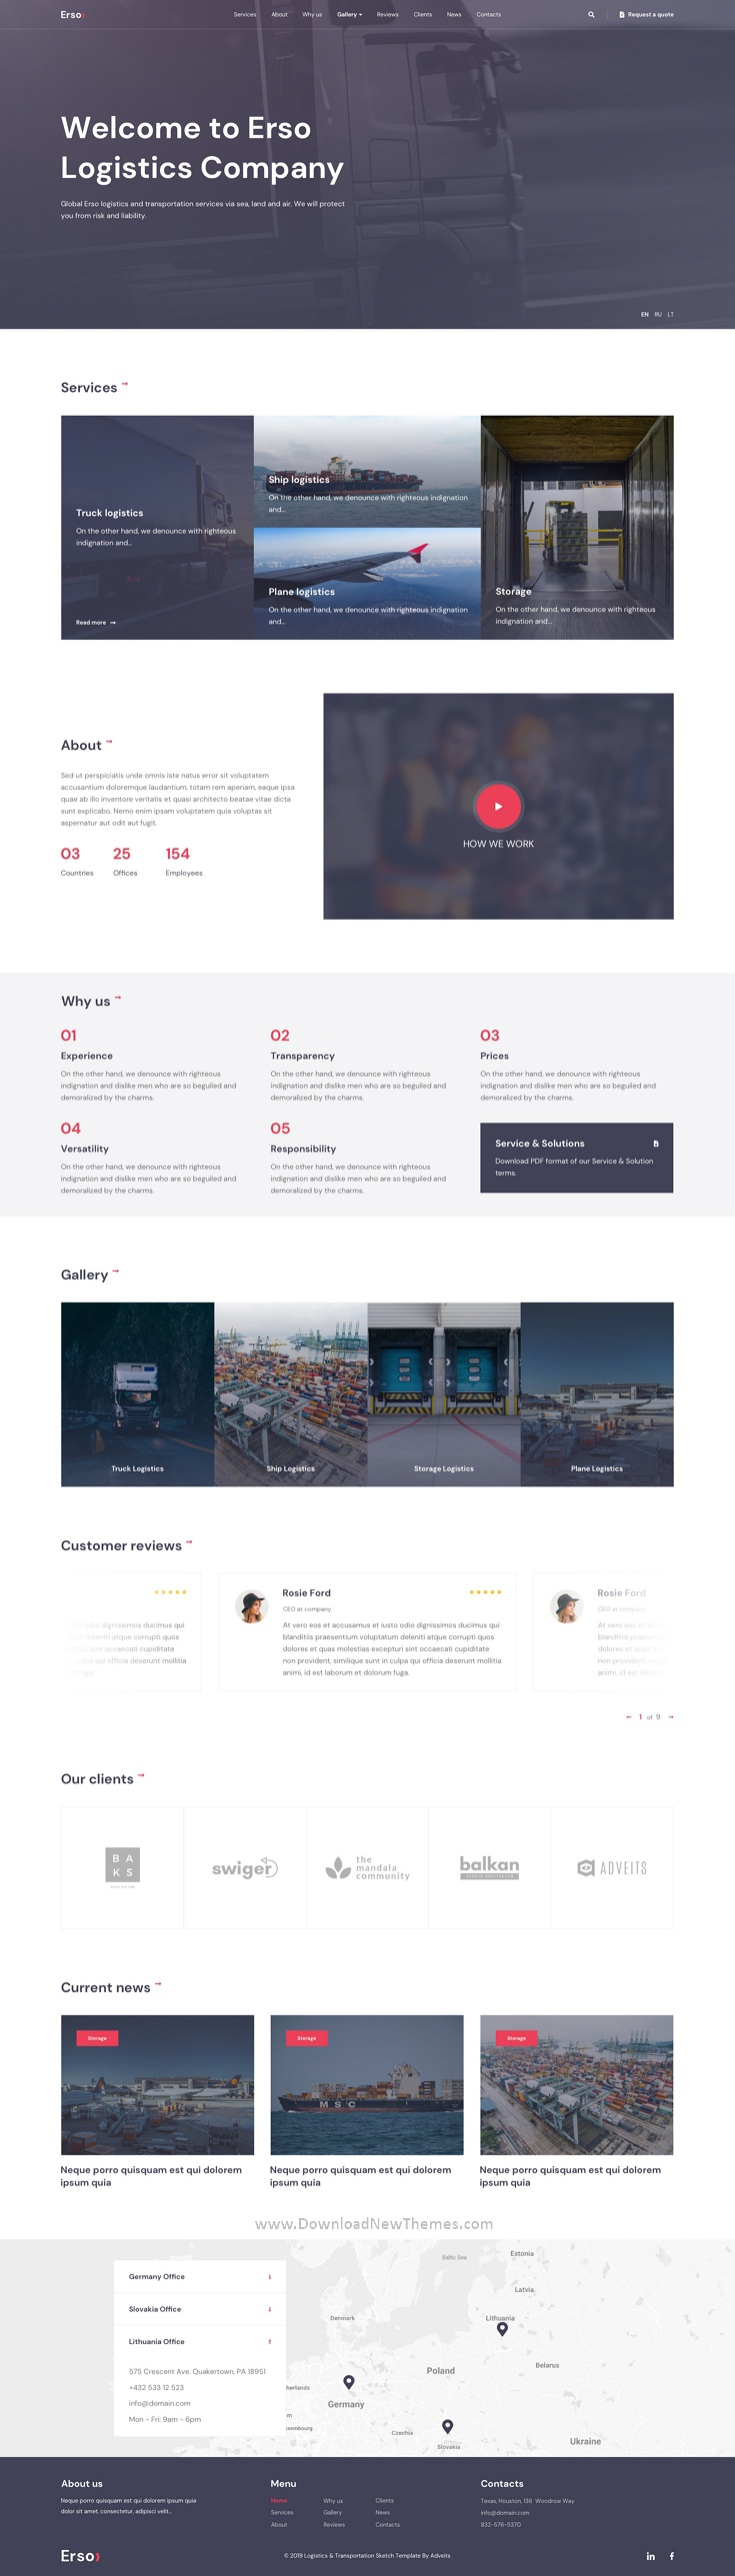 Best Logistics & Transportation Website Template